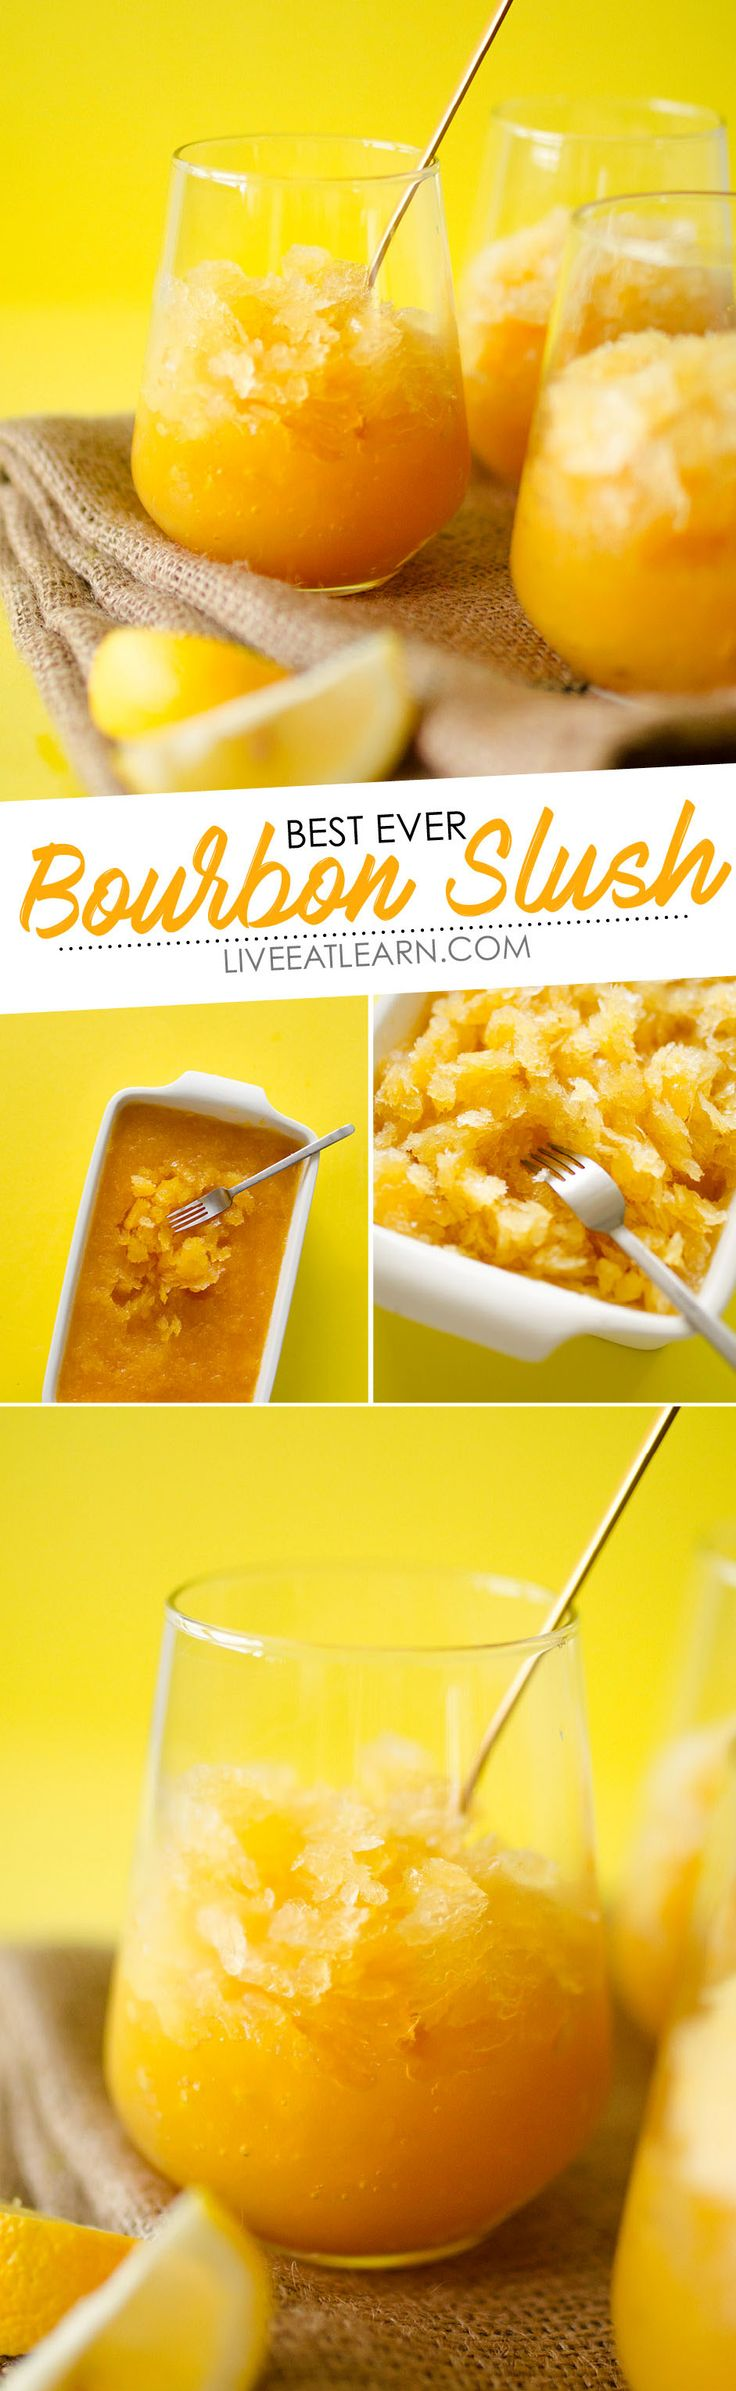 This Bourbon Slush Recipe comes together in minutes. Mix, freeze, and forget! The perfect easy cocktail idea for keeping on hand in case of impromptu parties and family get togethers. A great summer treat! // Live Eat Learn